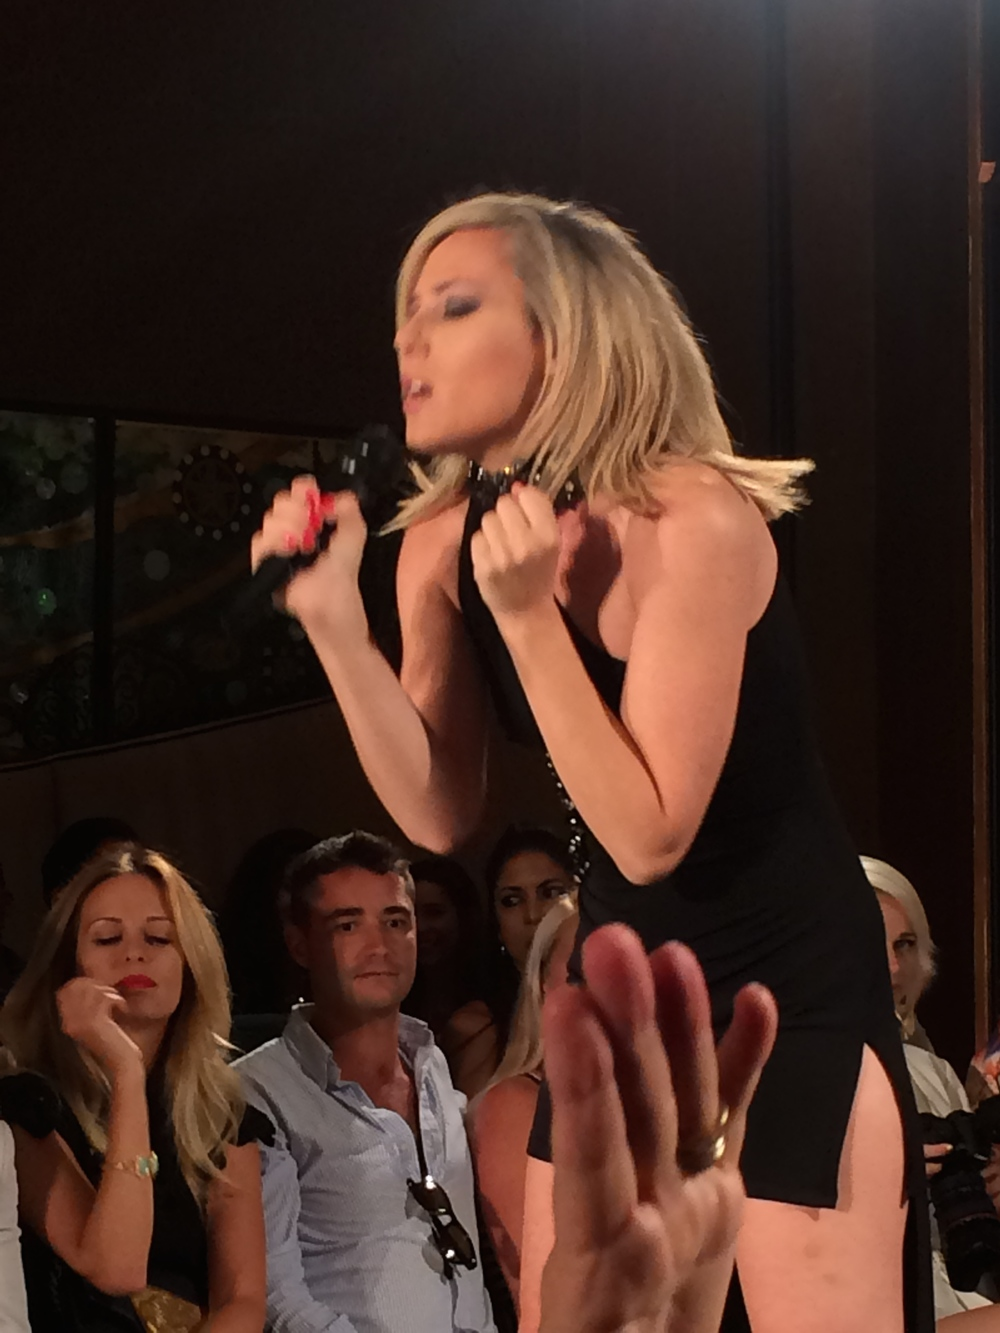 Singer, Beca Dreams performing at the Julian Chang Fashion Show in Miami Beach, Fla.